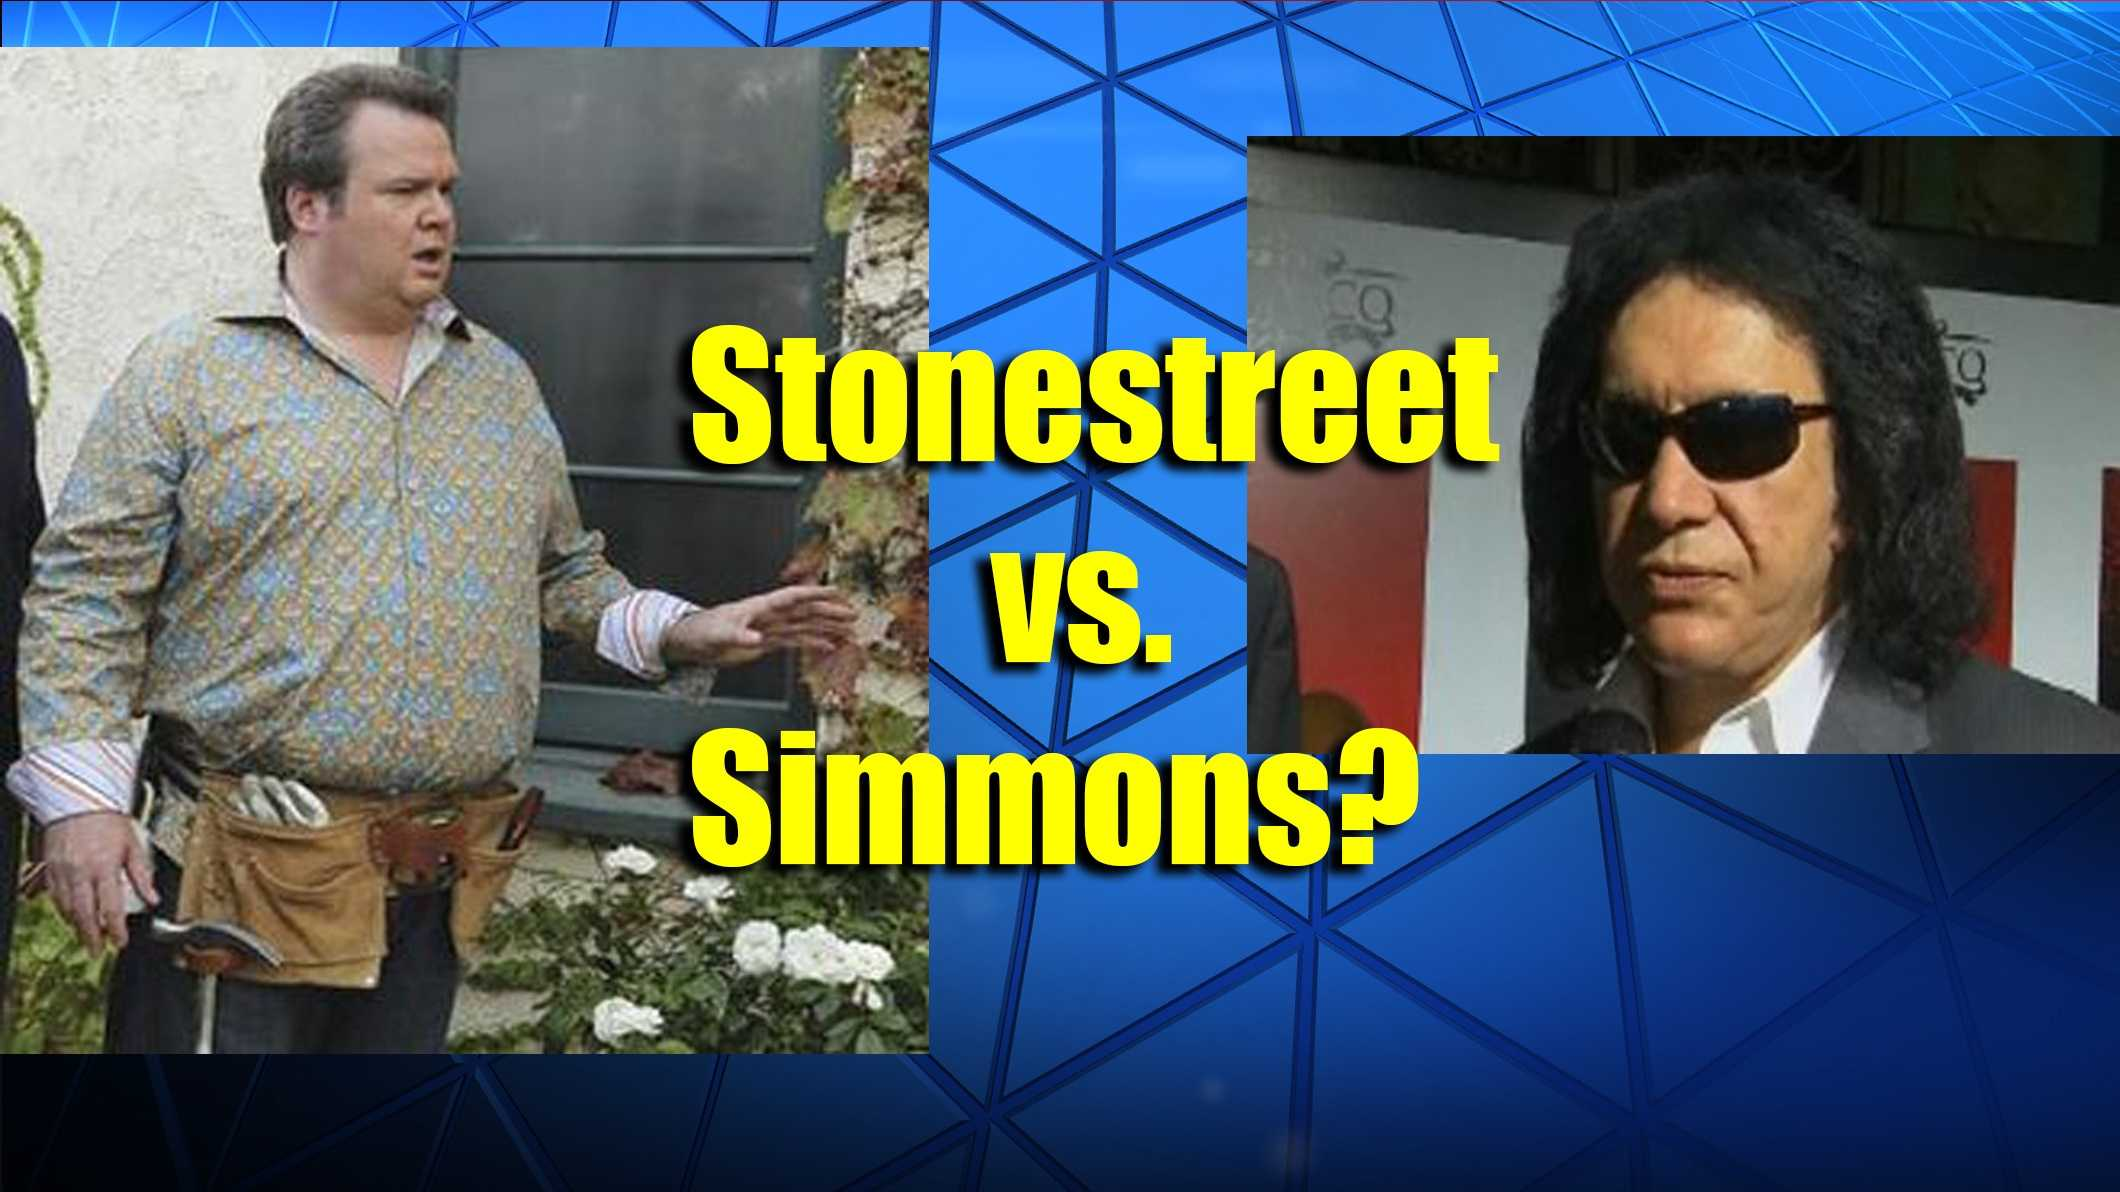 Eric Stonestreet and Gene Simmons beef erupts on Twitter